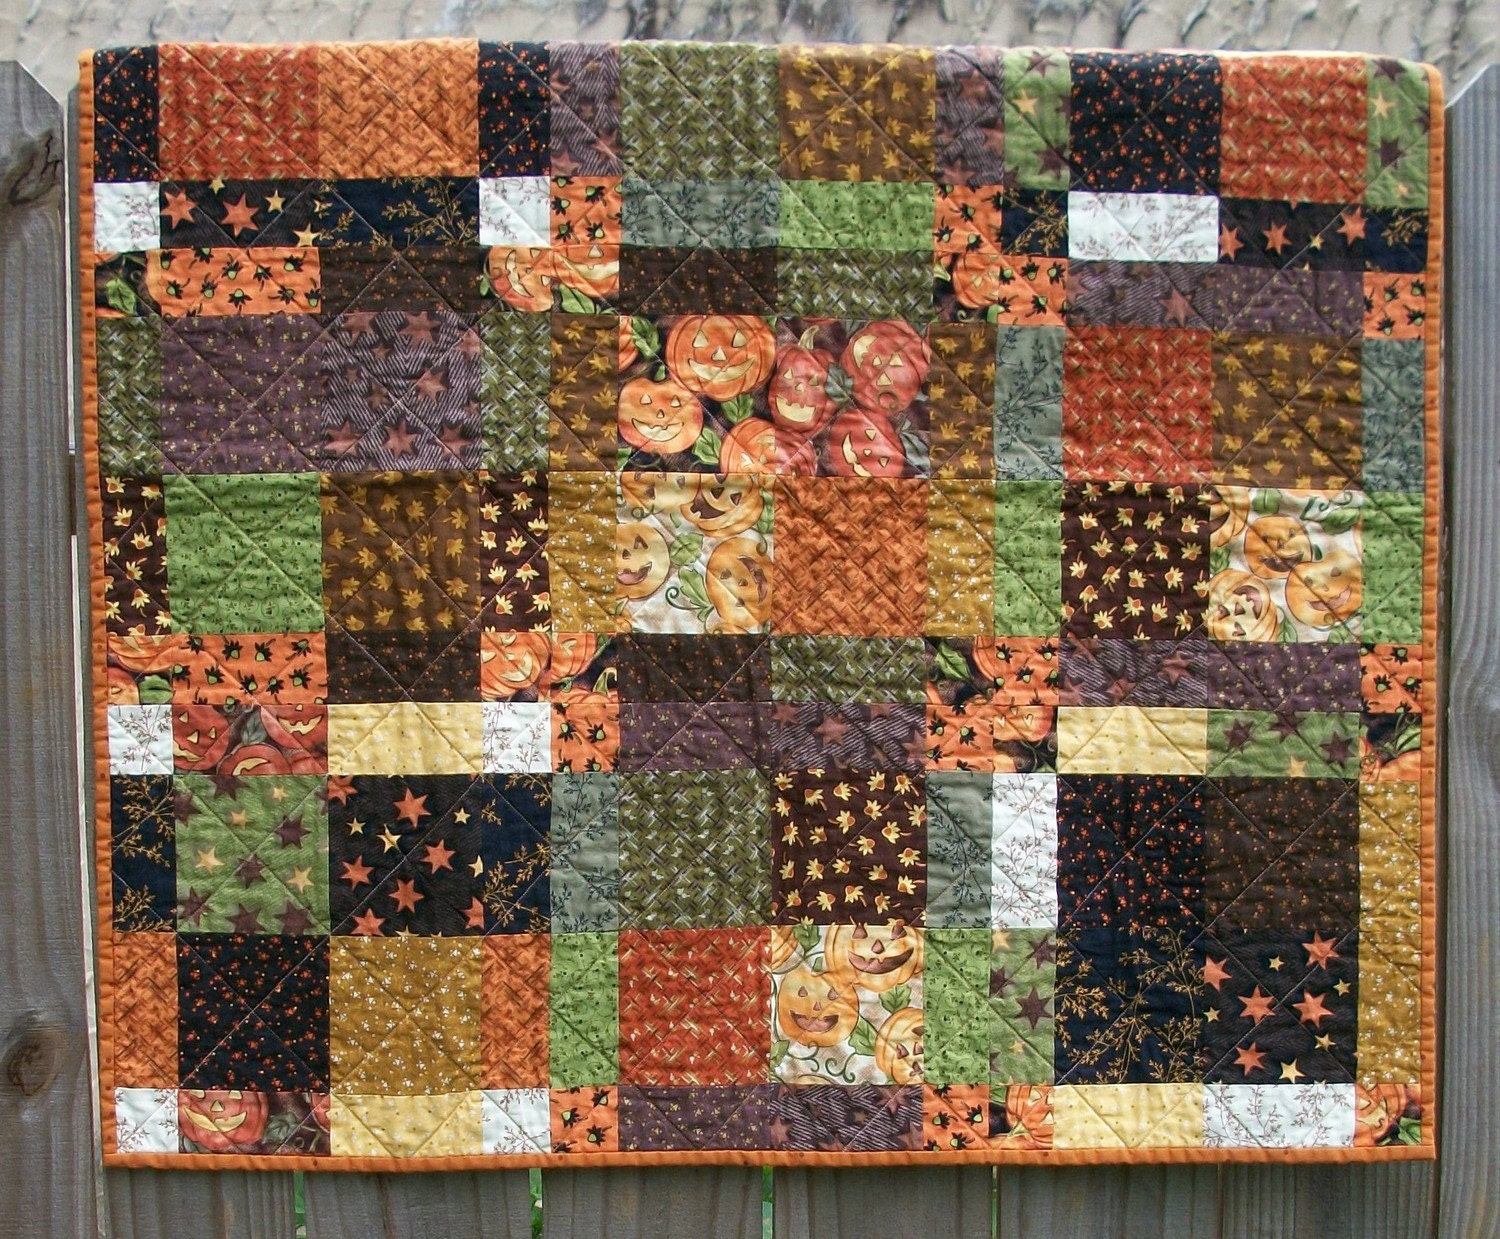 October Glow Quilted Handmade Patchwork Halloween Table Topper